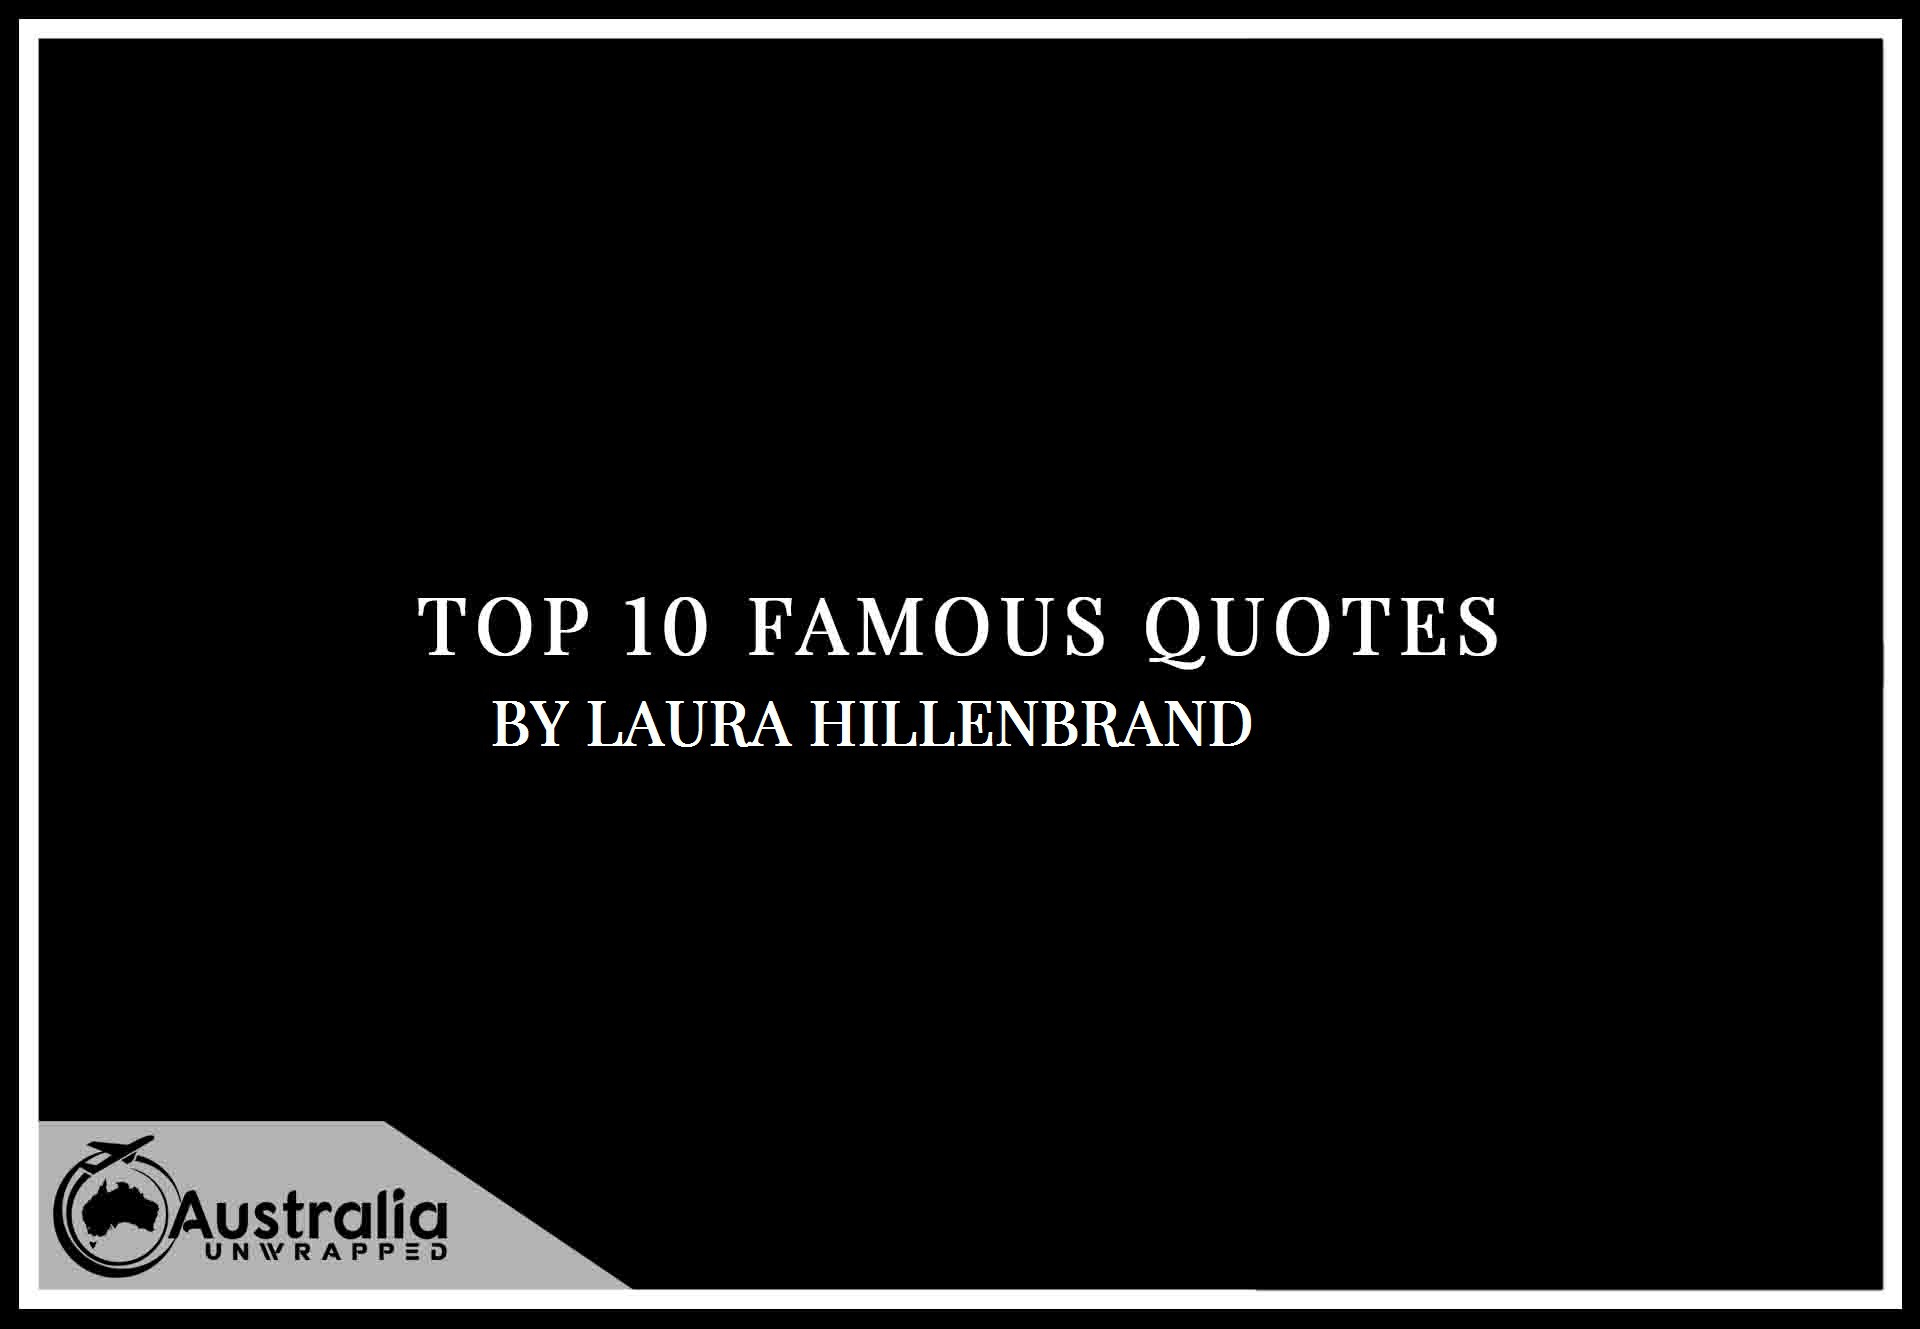 Laura Hillenbrand's Top 10 Popular and Famous Quotes